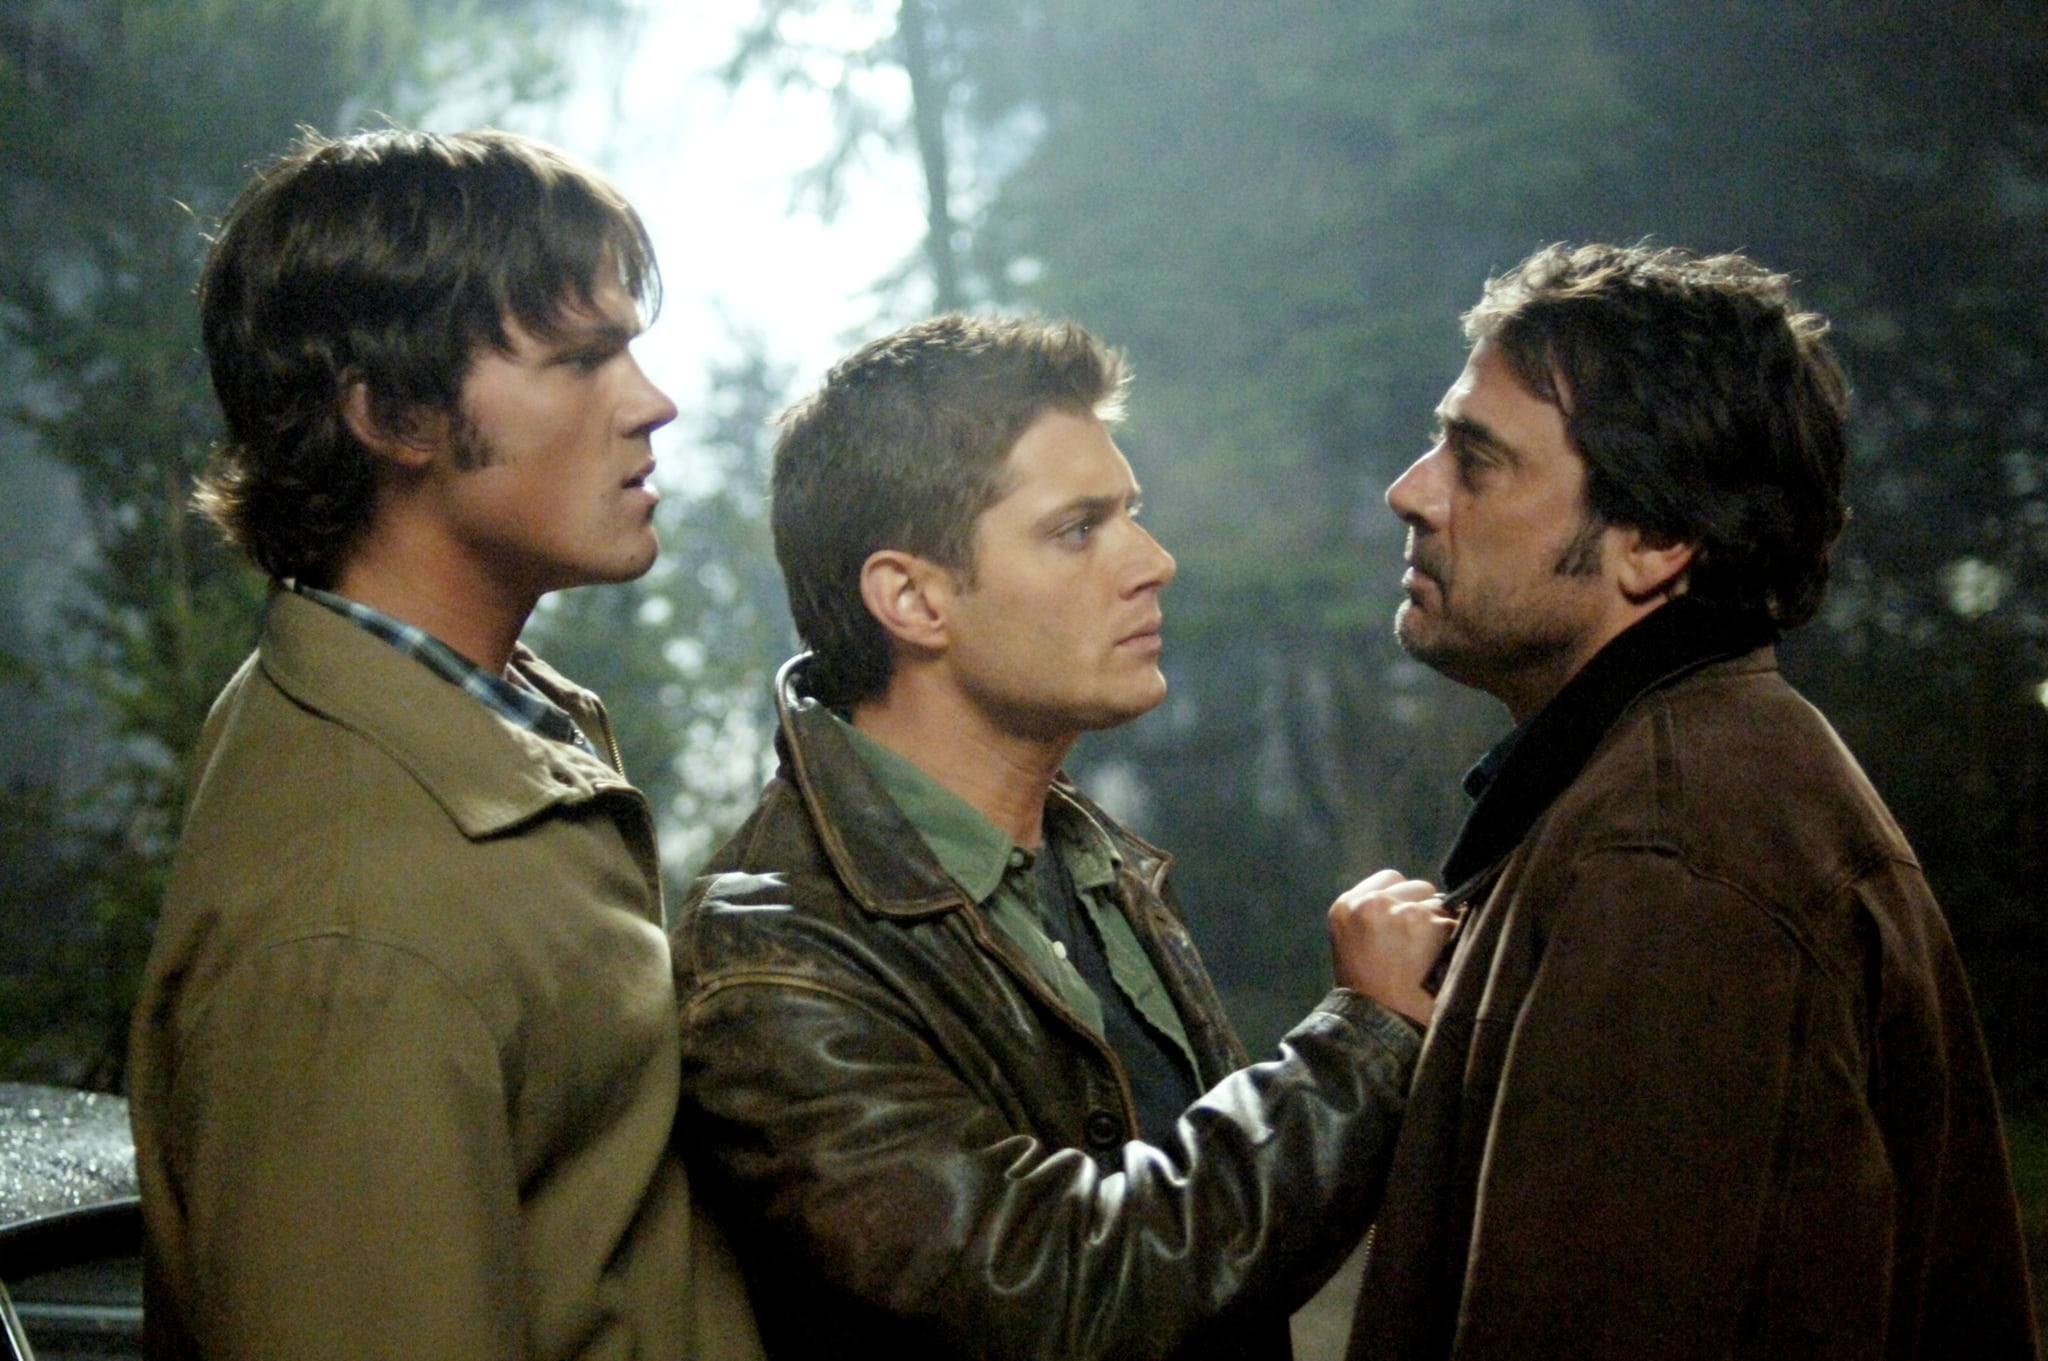 SUPERNATURAL, Jared Padalecki, Jensen Ackles, Jeffrey Dean Morgan, 'Dead Man's Blood', (Season 1, aired April 20, 2006), 2005-, photo: Sergei Bachlakov /  Warner Bros. / Courtesy: Everett Collection